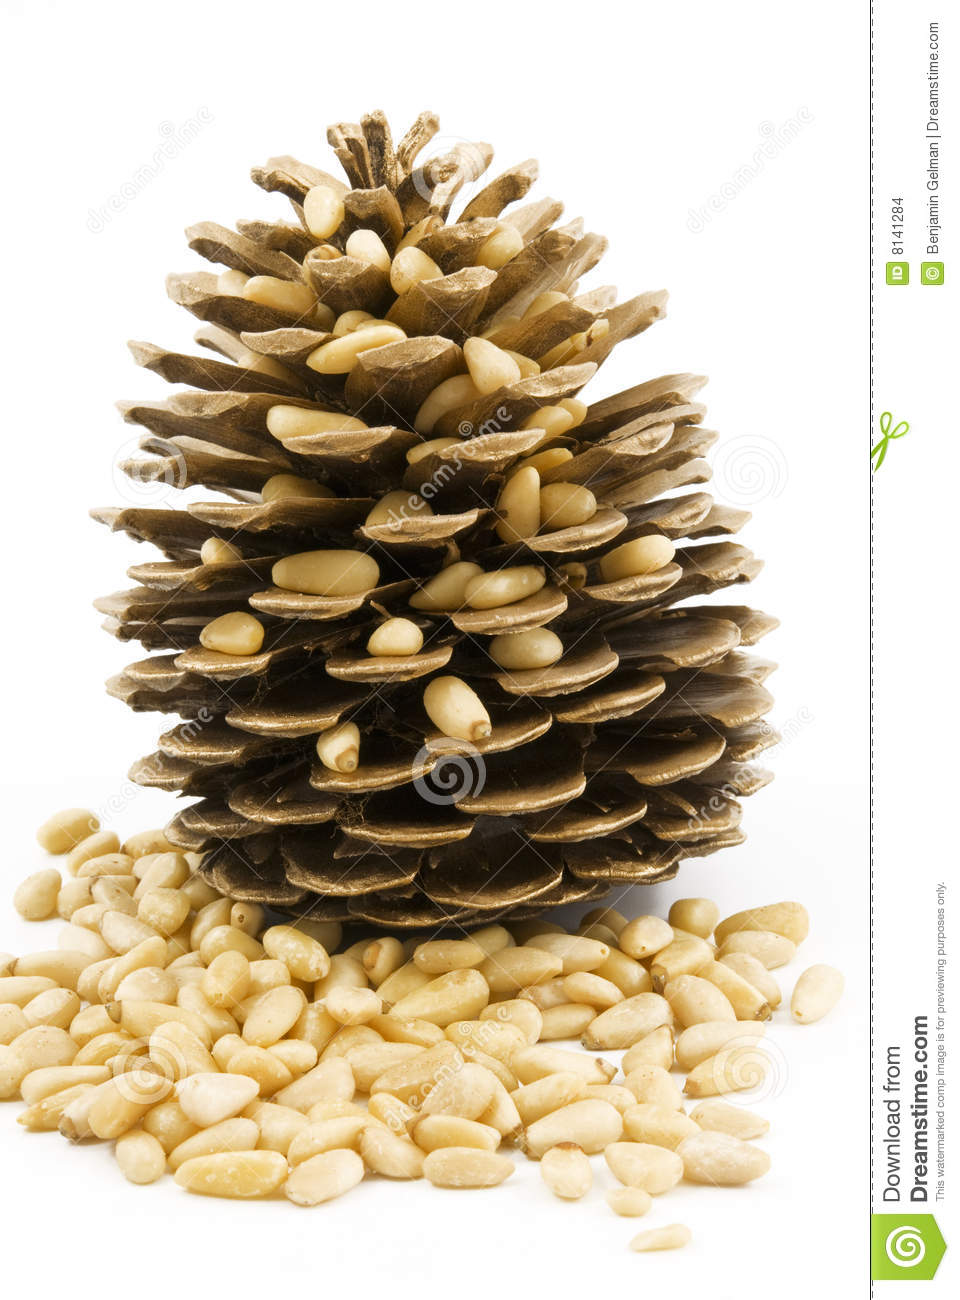 Is pine nuts a nut